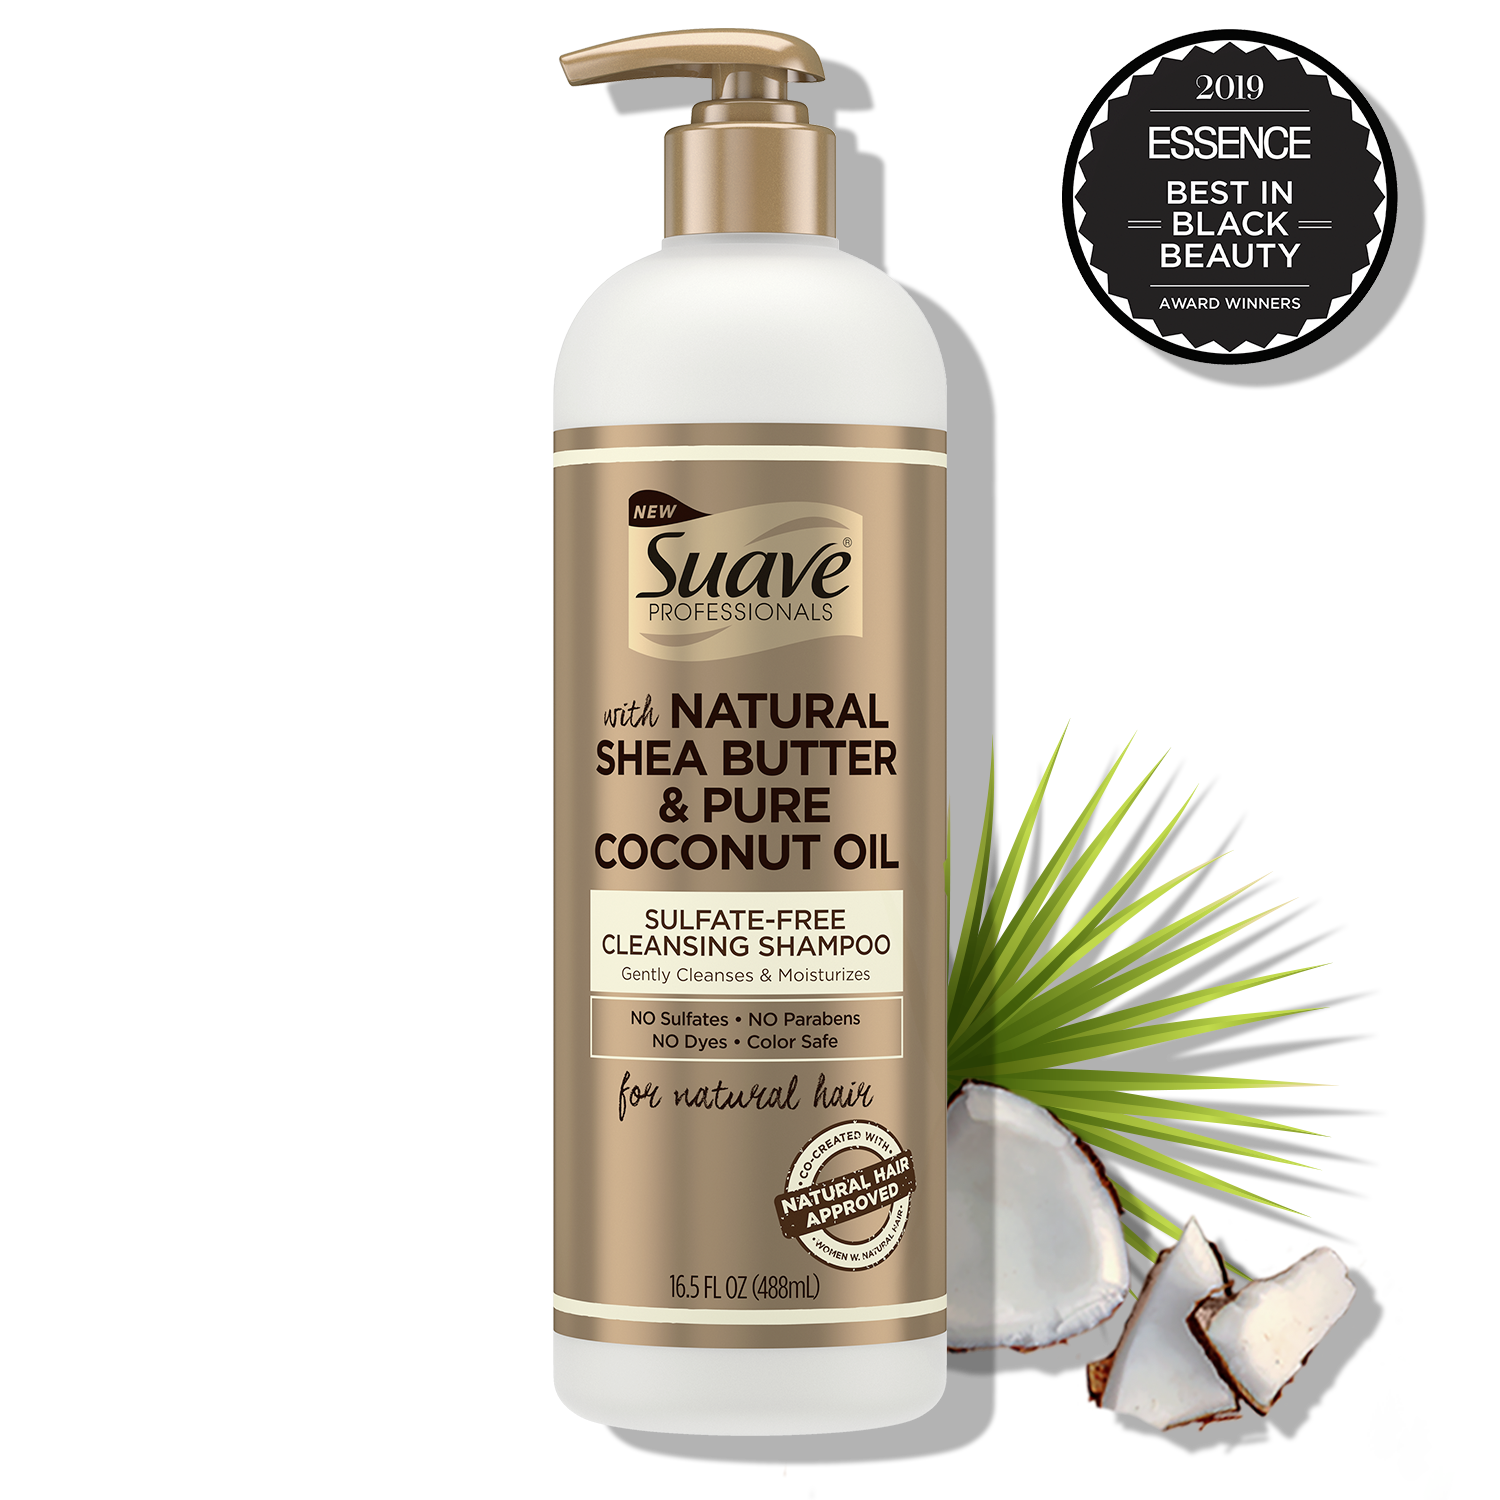 [Suave Professionals Sulfate-free Cleansing Shampoo 16.5oz]